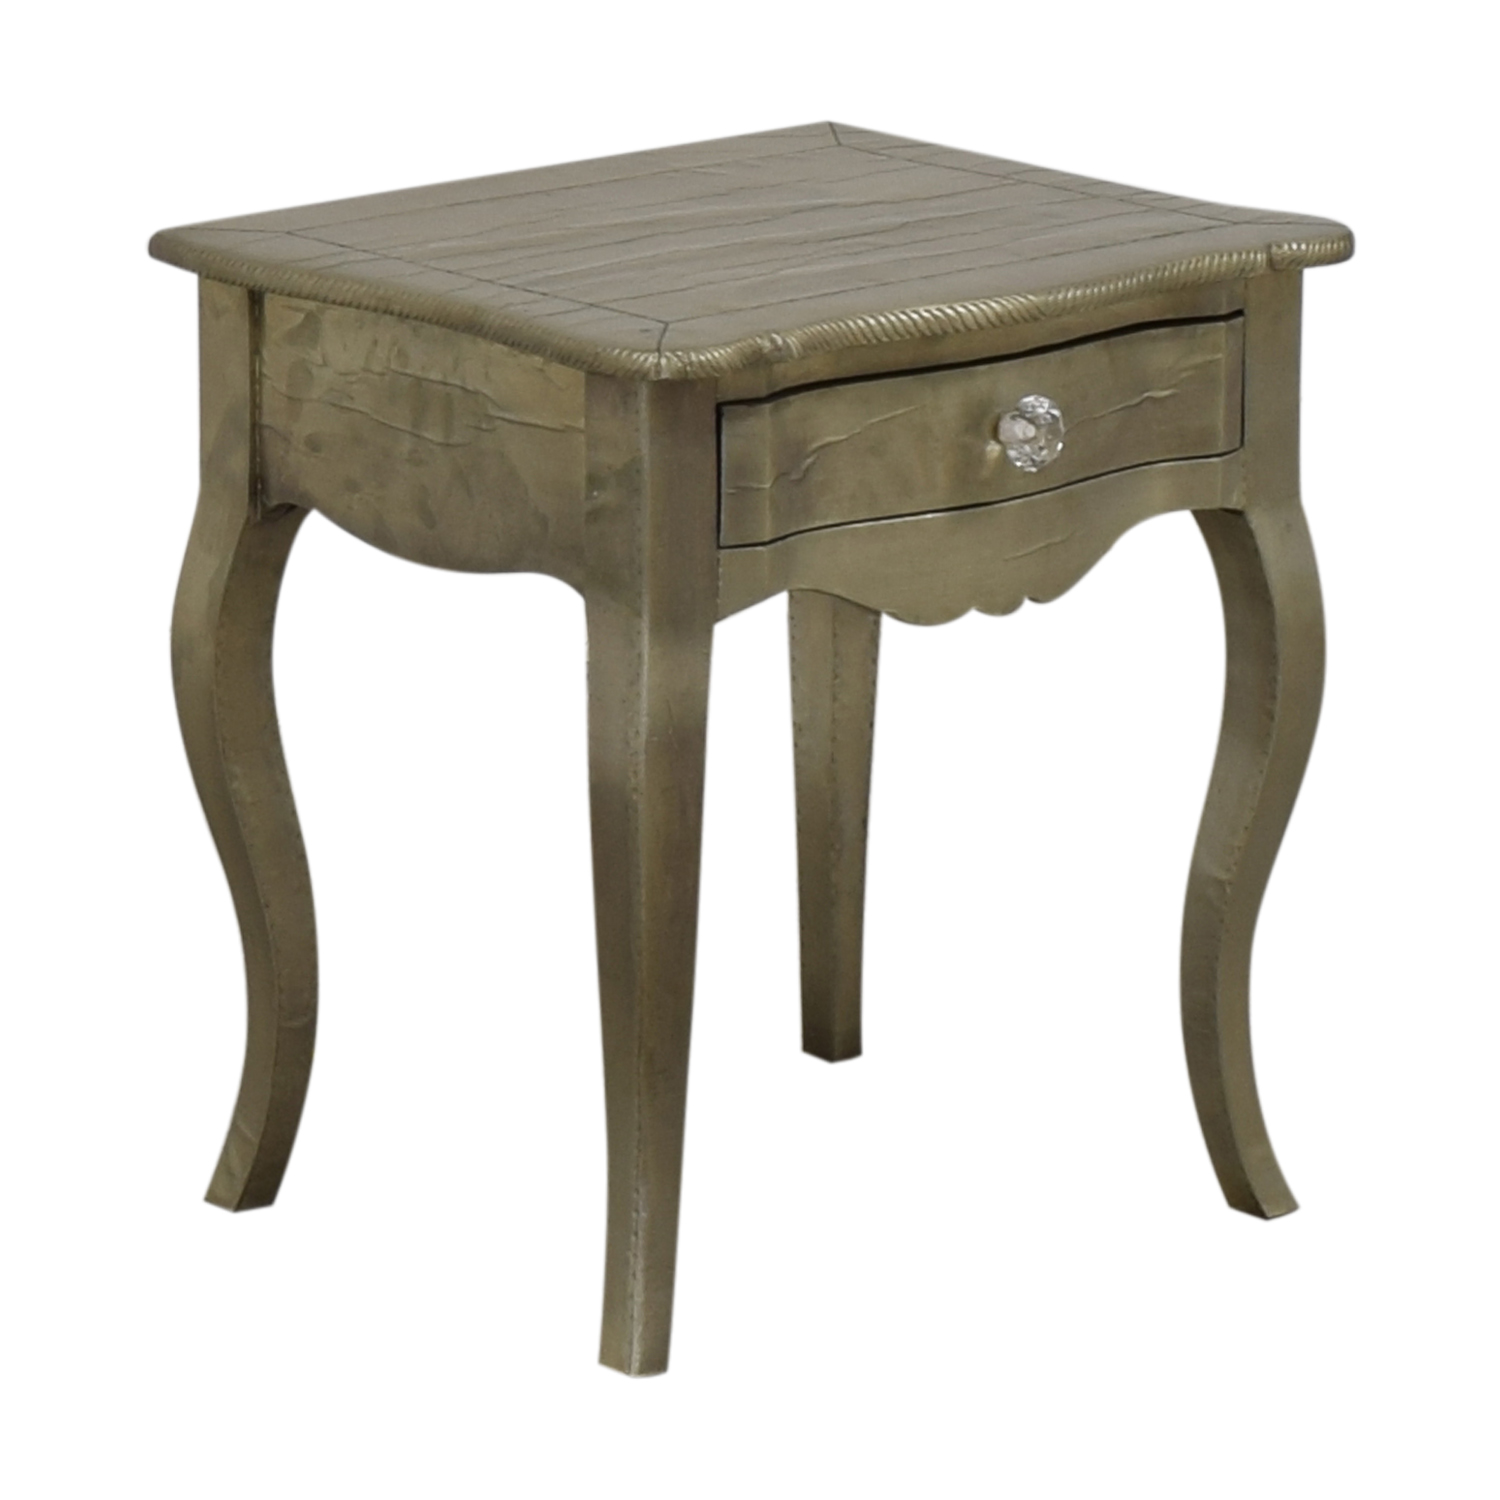 ABC Carpet & Home ABC Carpet & Home Wood Silver Leaf Bedside Table for sale